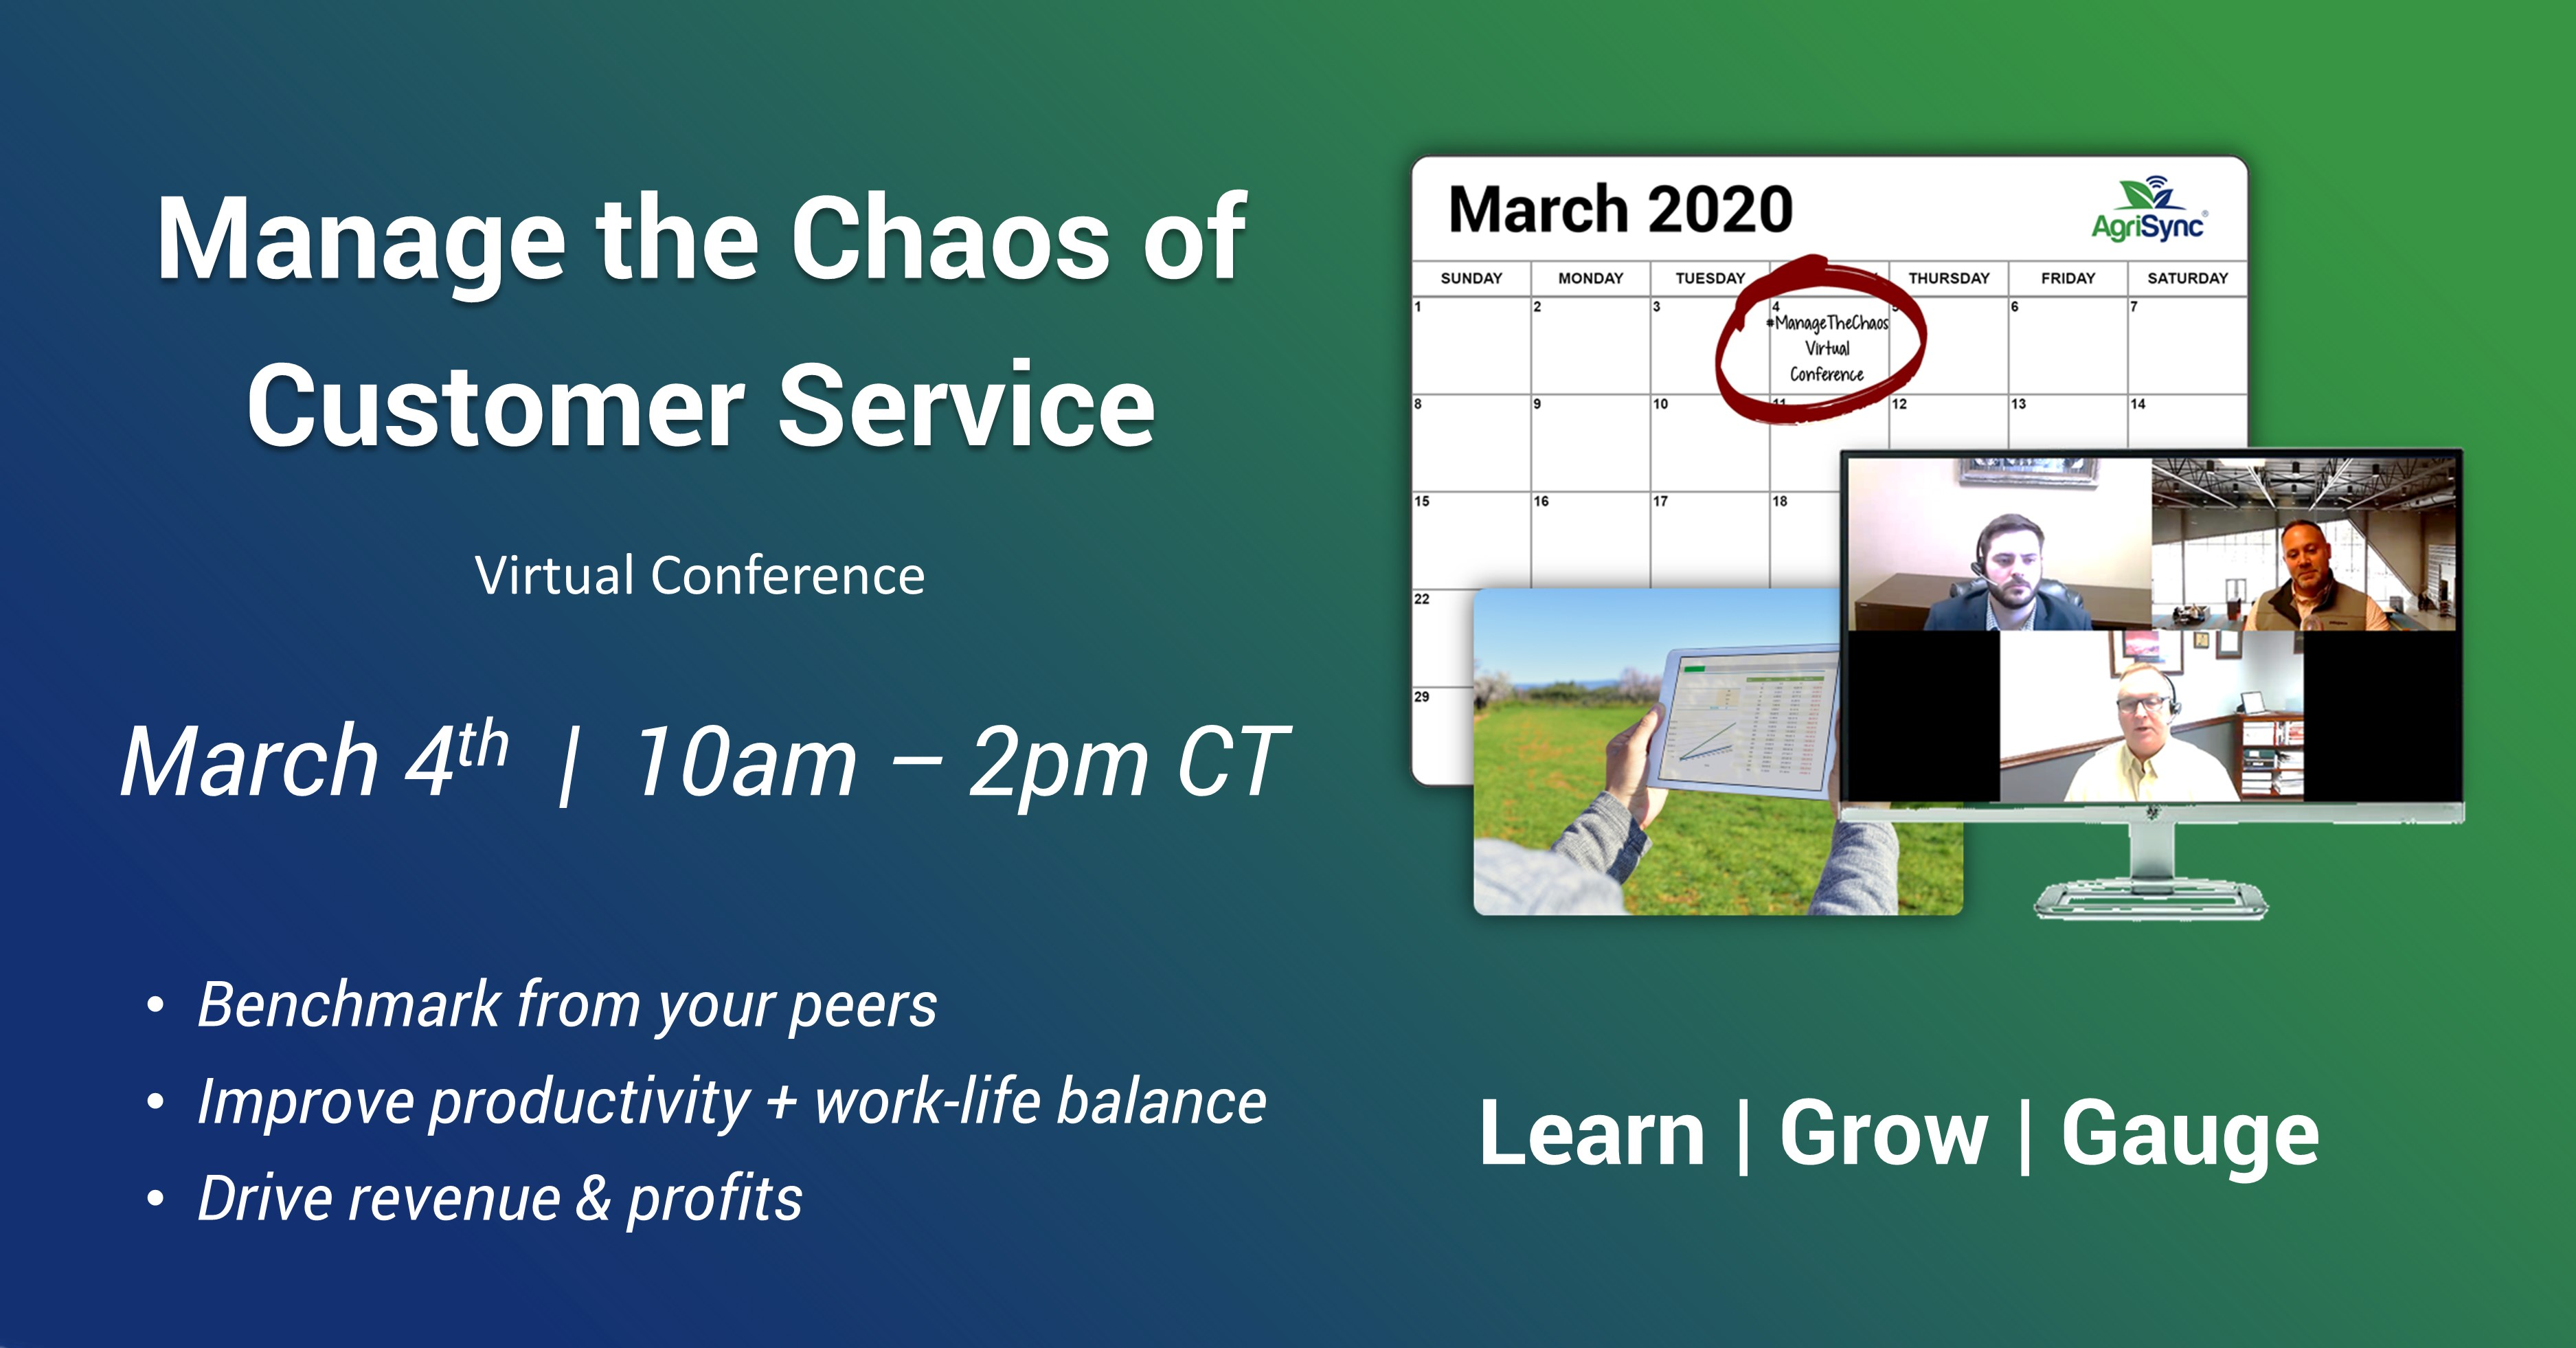 Virtual Conference for Ag Professionals in Customer Service Announced for March 4th